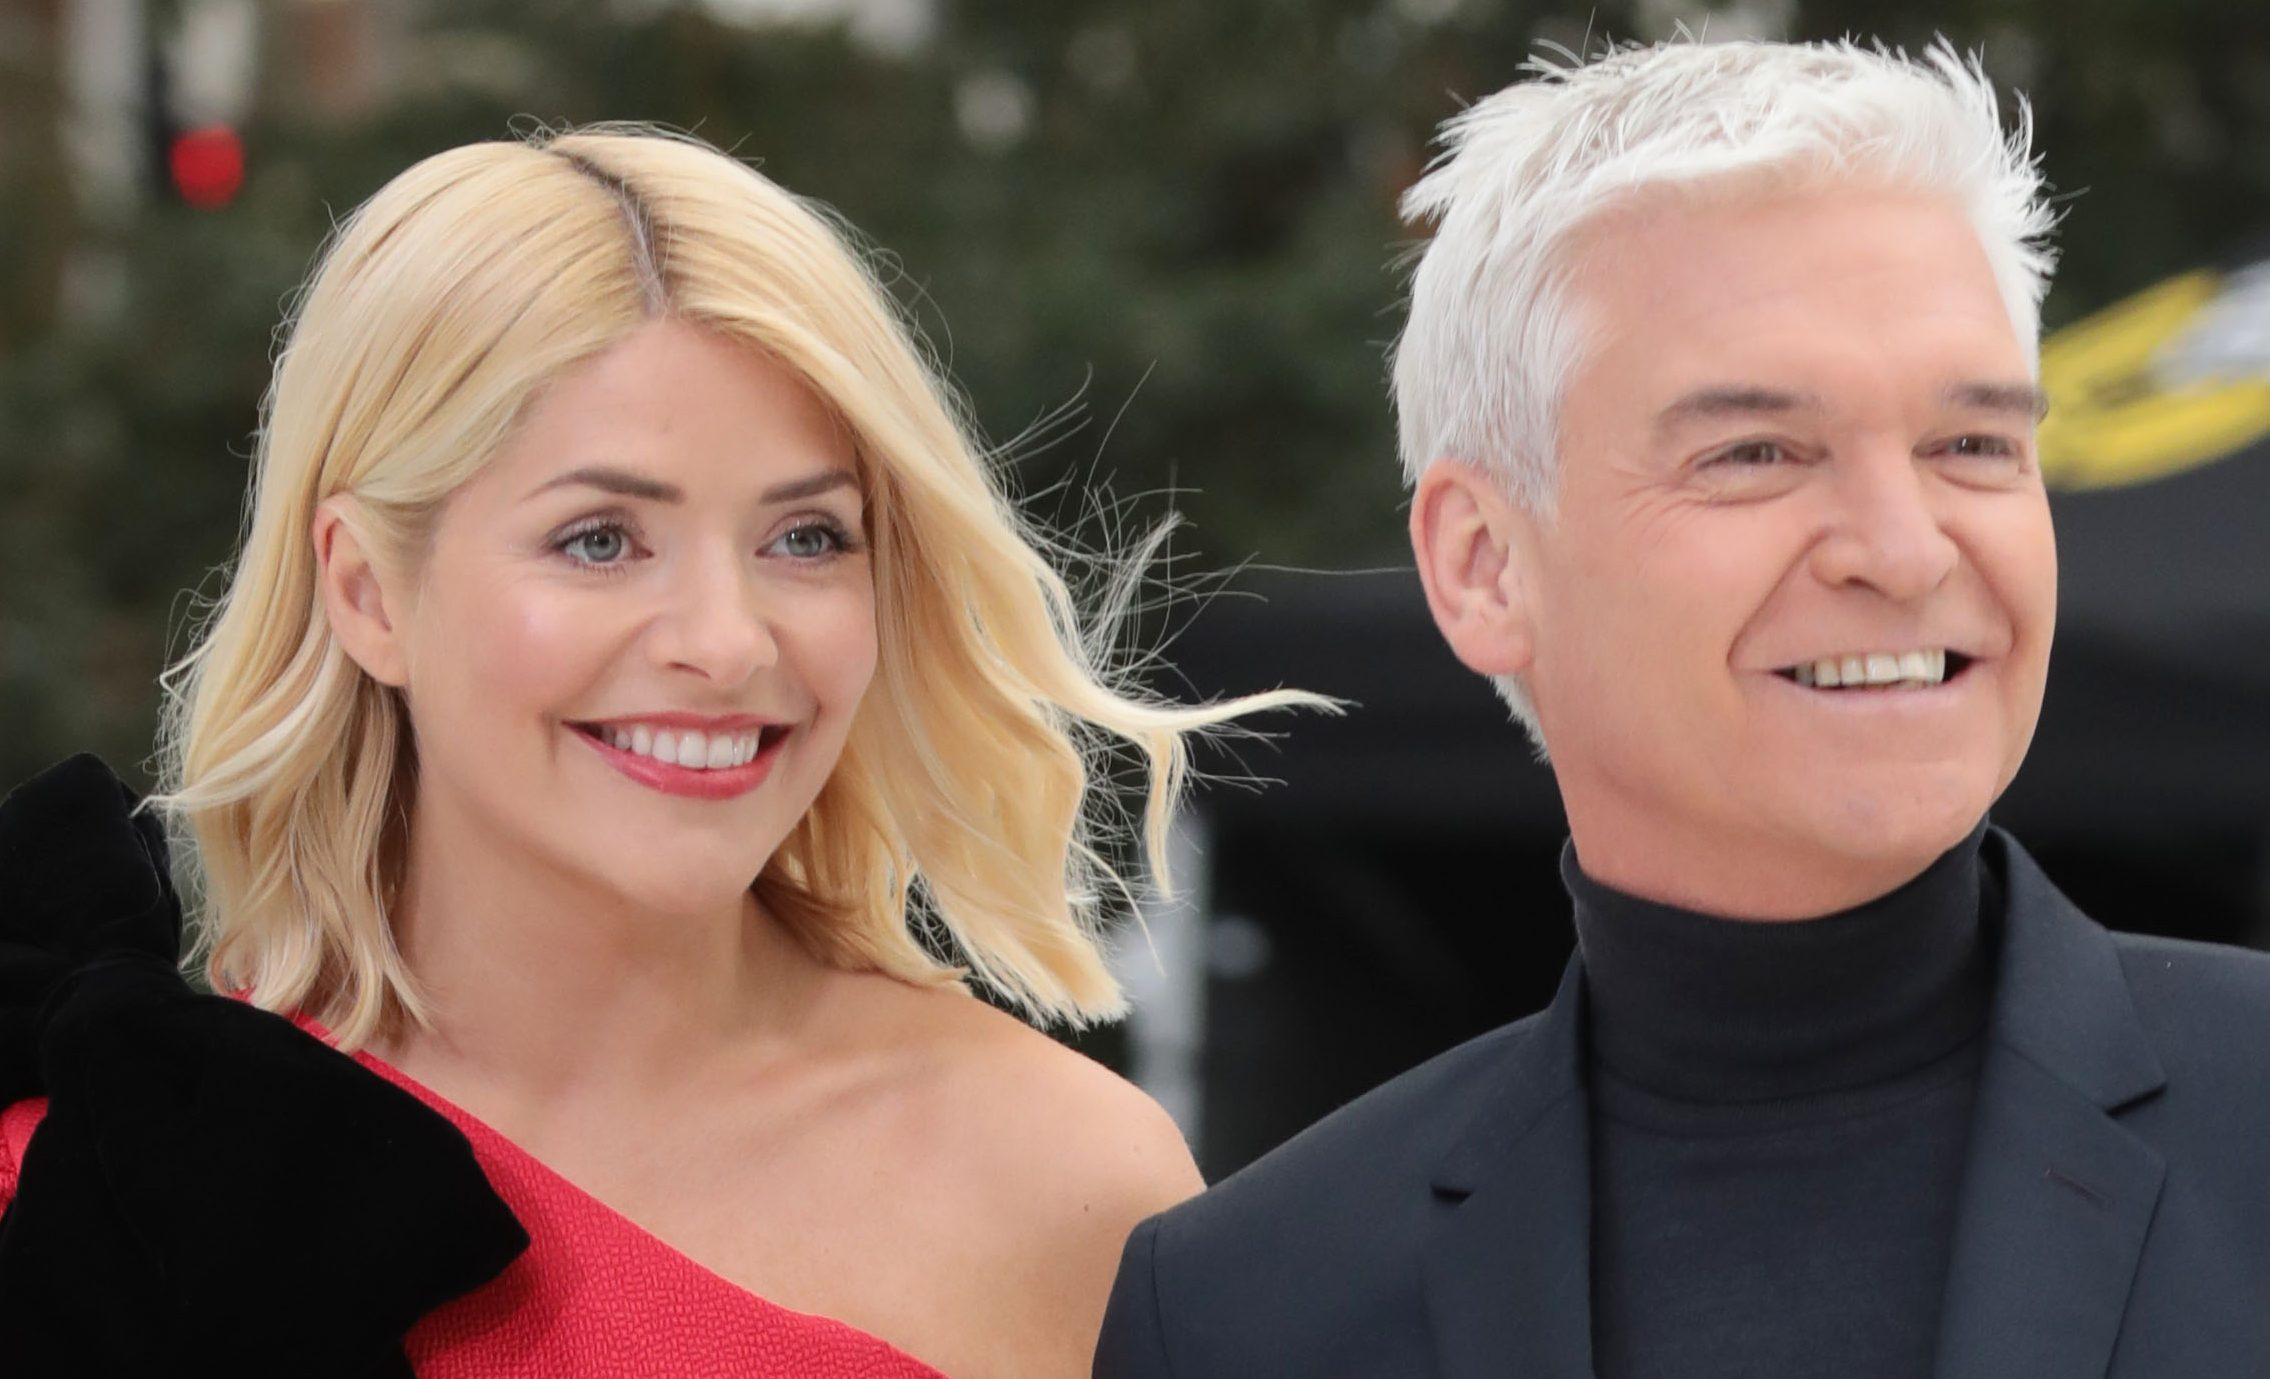 Holly Willoughby hugs Phillip Schofield in heartwarming clip from Dancing On Ice Christmas special